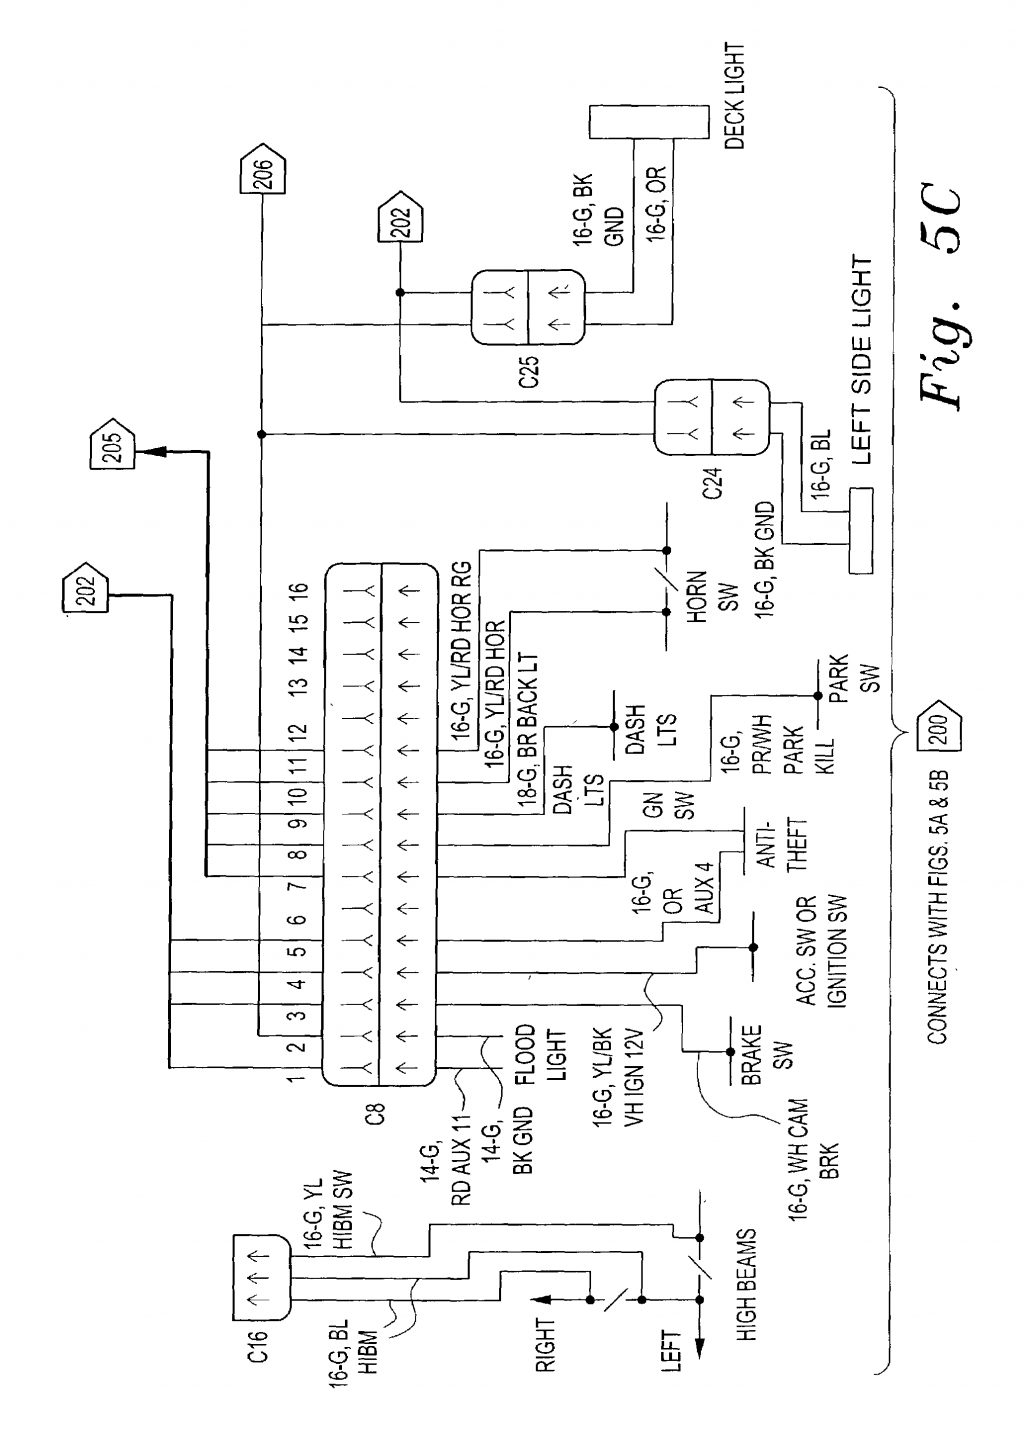 hight resolution of whelen pcds 9 wiring diagram diagram data schema exp whelen edge 9000 wiring schematic wiring diagram